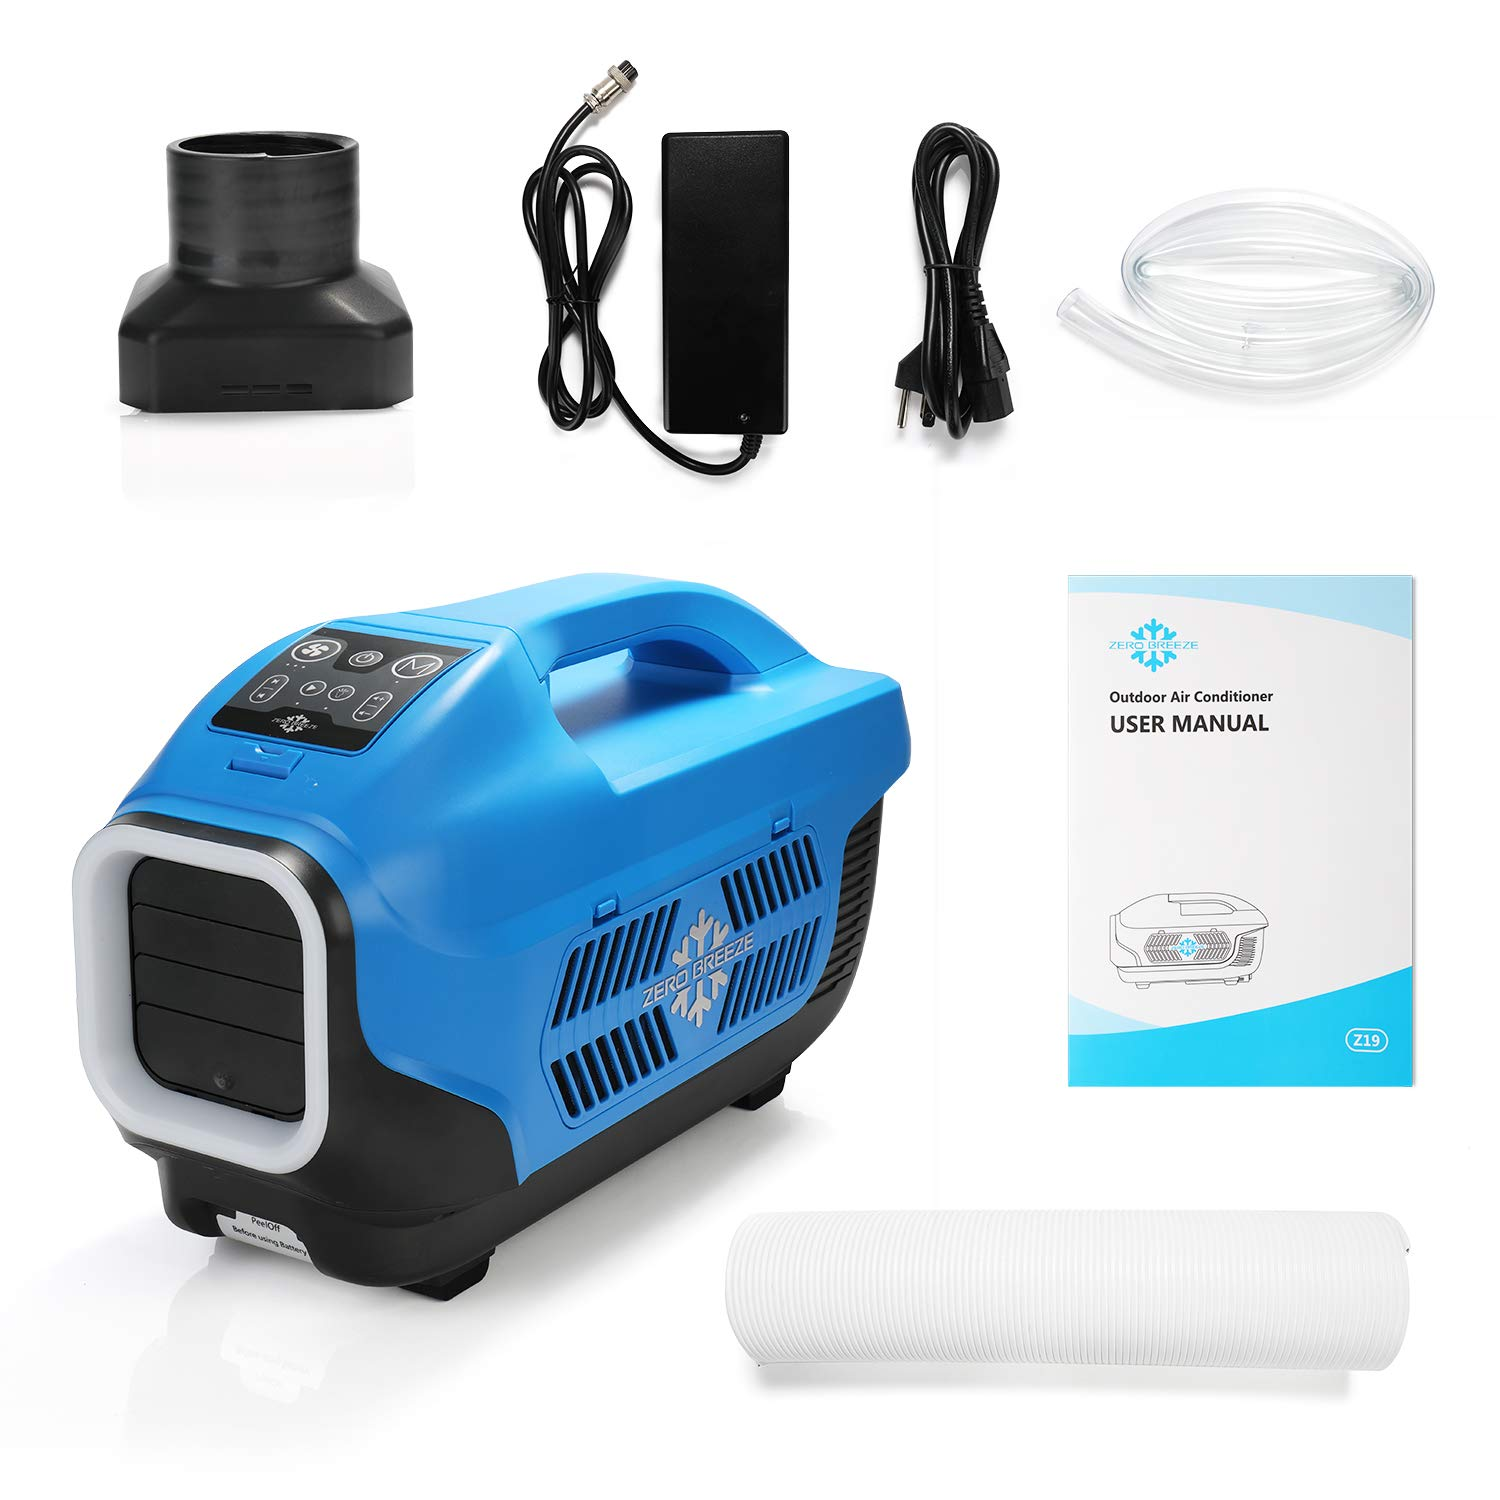 Zero Breeze Z19 Portable Air Conditioner for Outdoors, Micro AC Compressor,  USB Charging and LED Light, for 1-4 Person Camping Tent, RV, Van, Picnic